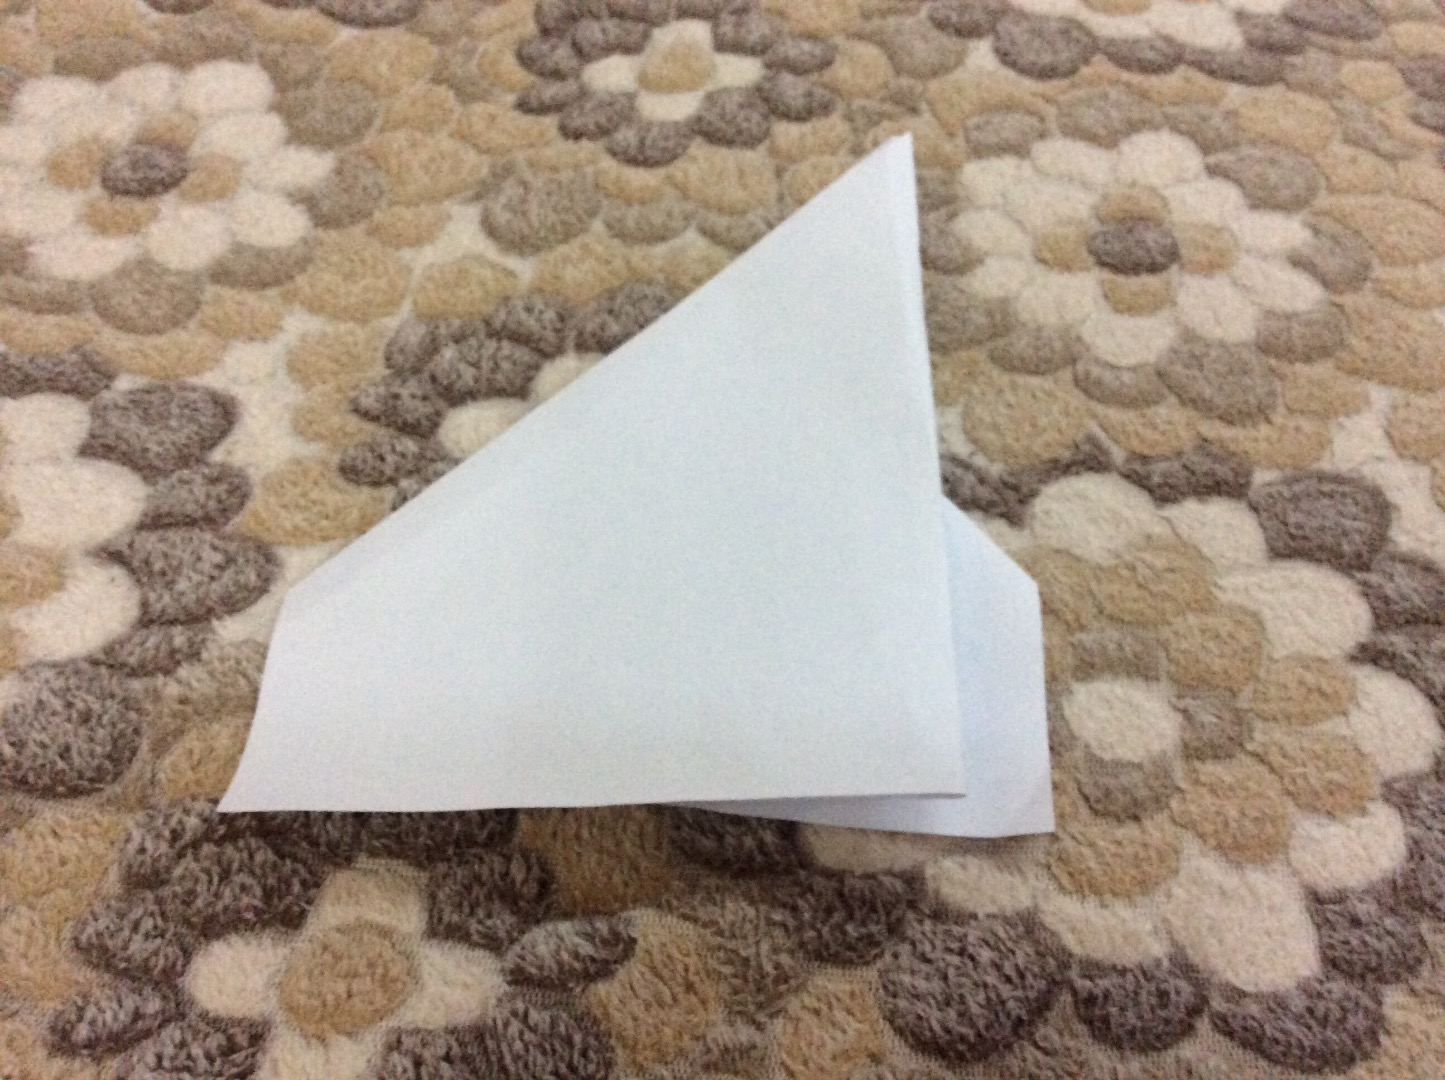 Picture of Second Flapping Wing